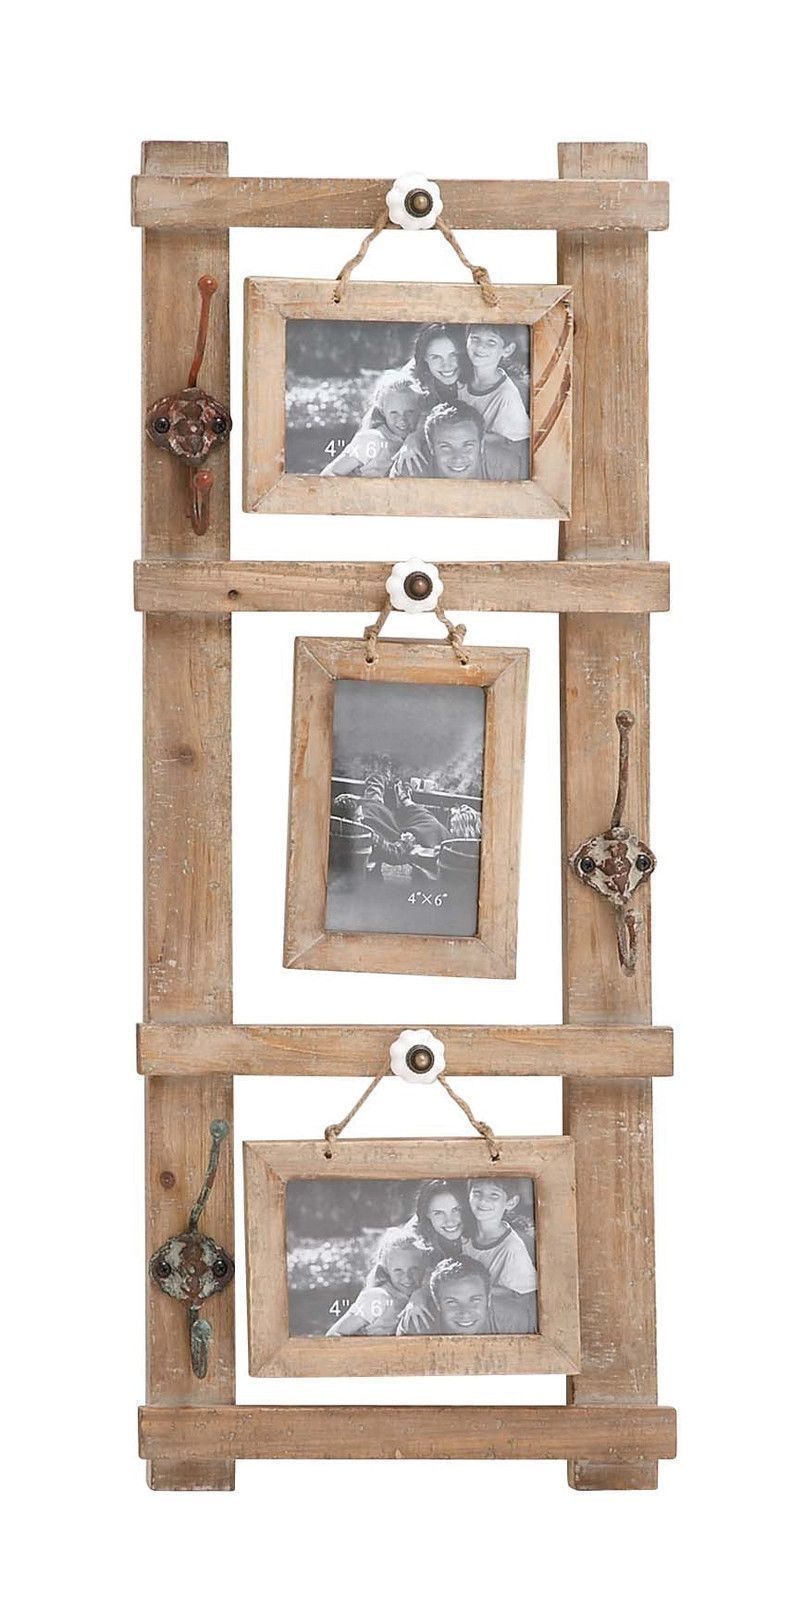 Rustic Western Wood Picture Frame 3 Hanging 5x7 Photos Vintage Look